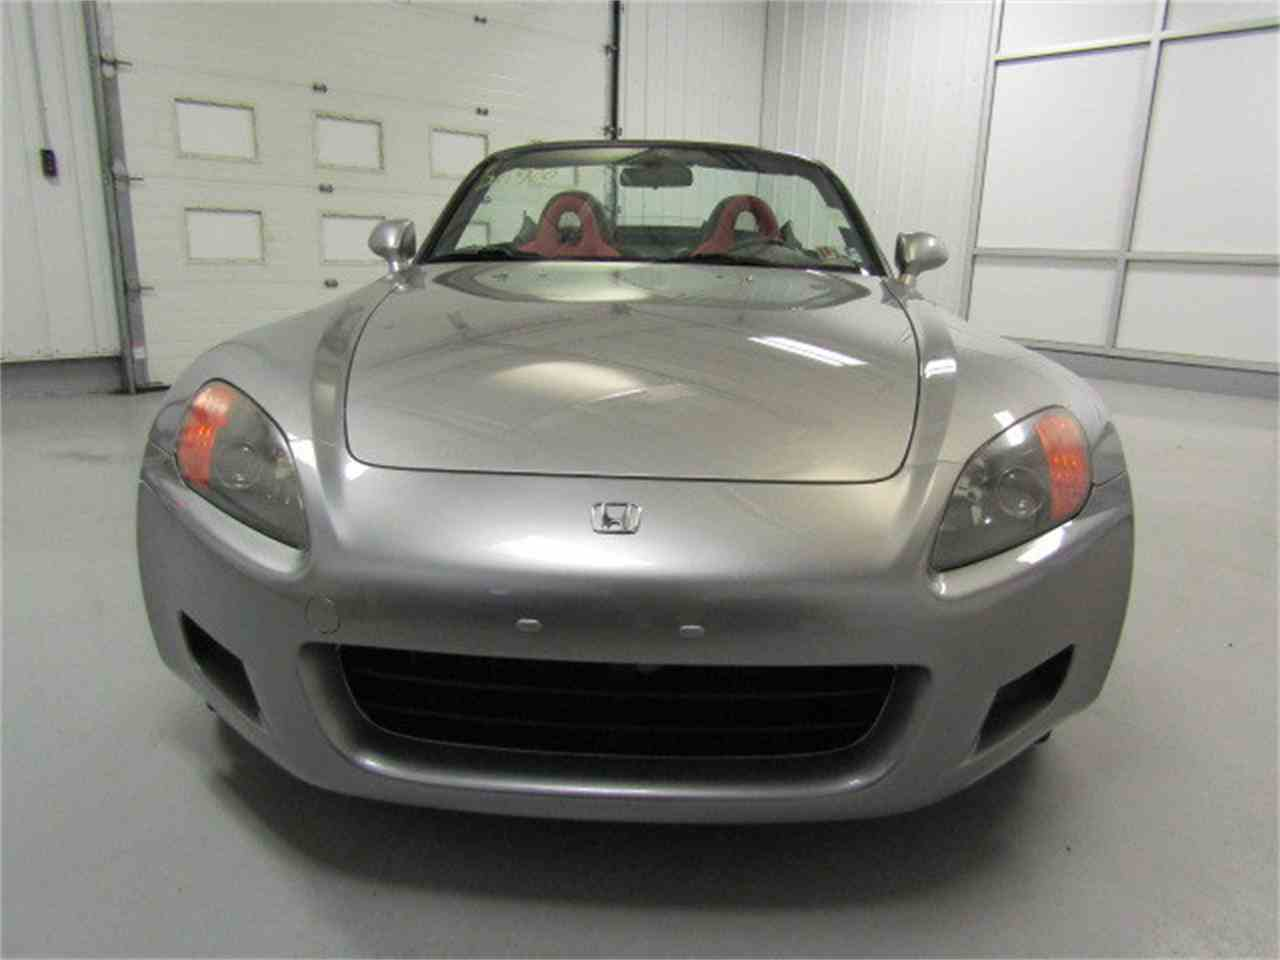 Large Picture of '01 Honda S2000 located in Virginia Offered by Duncan Imports & Classic Cars - LI1R